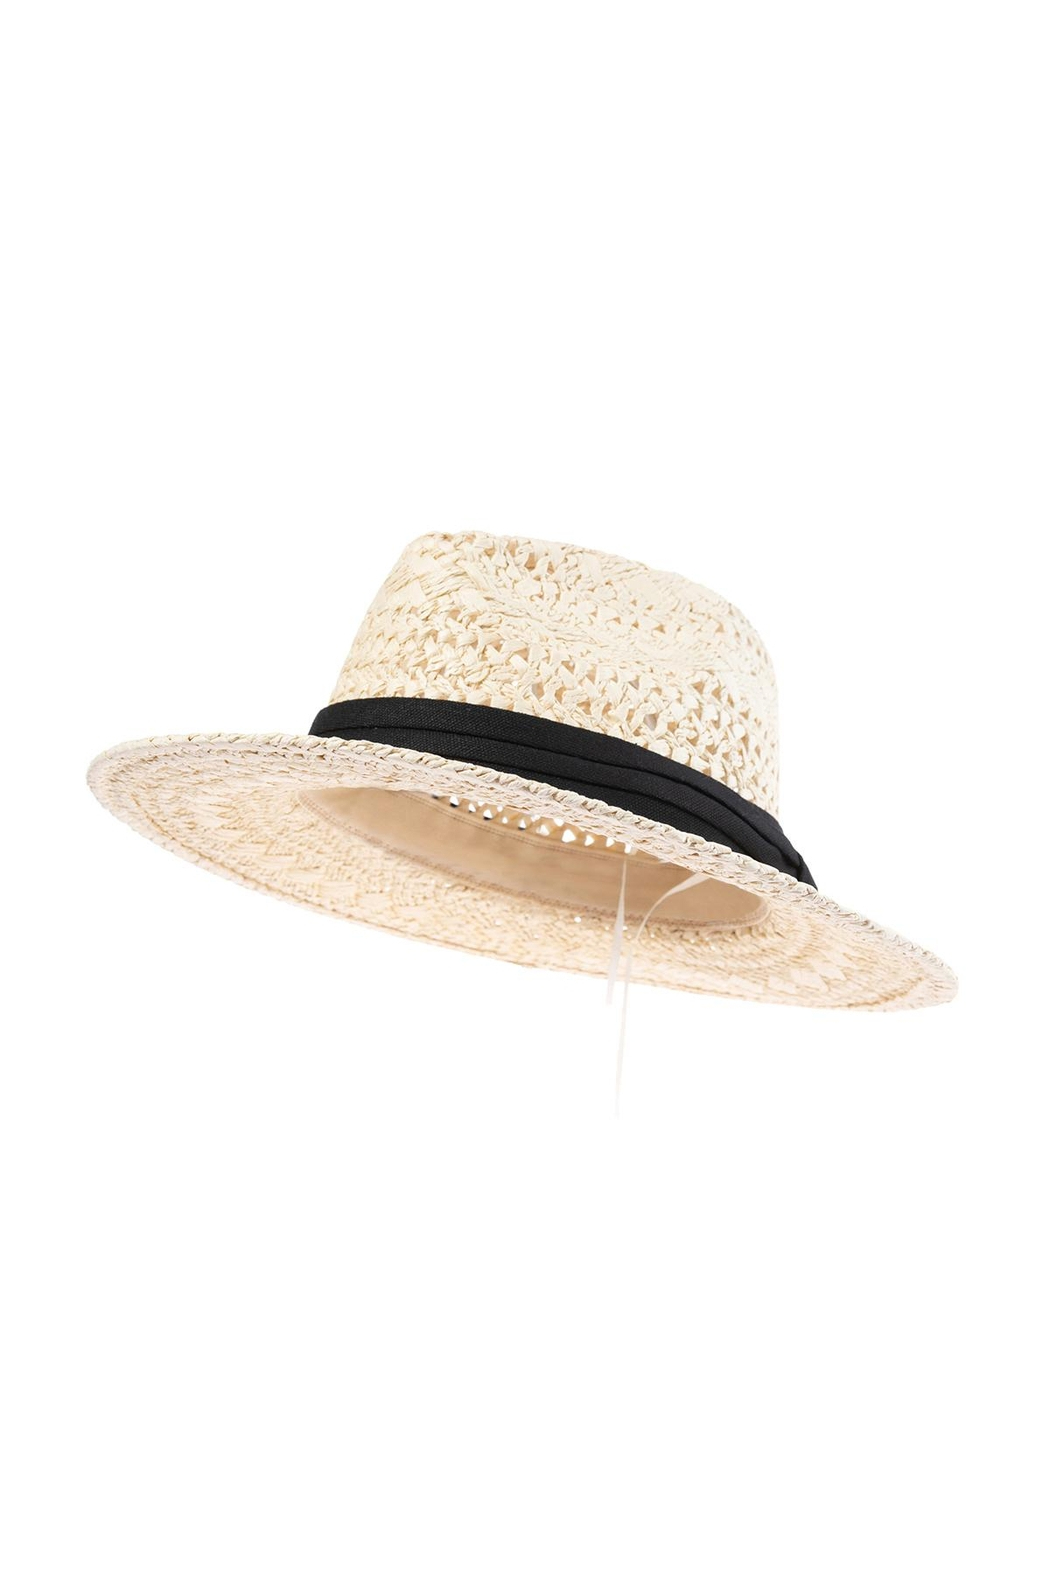 Riah Fashion Vory Straw Woven Lady Hat - Front Full Image